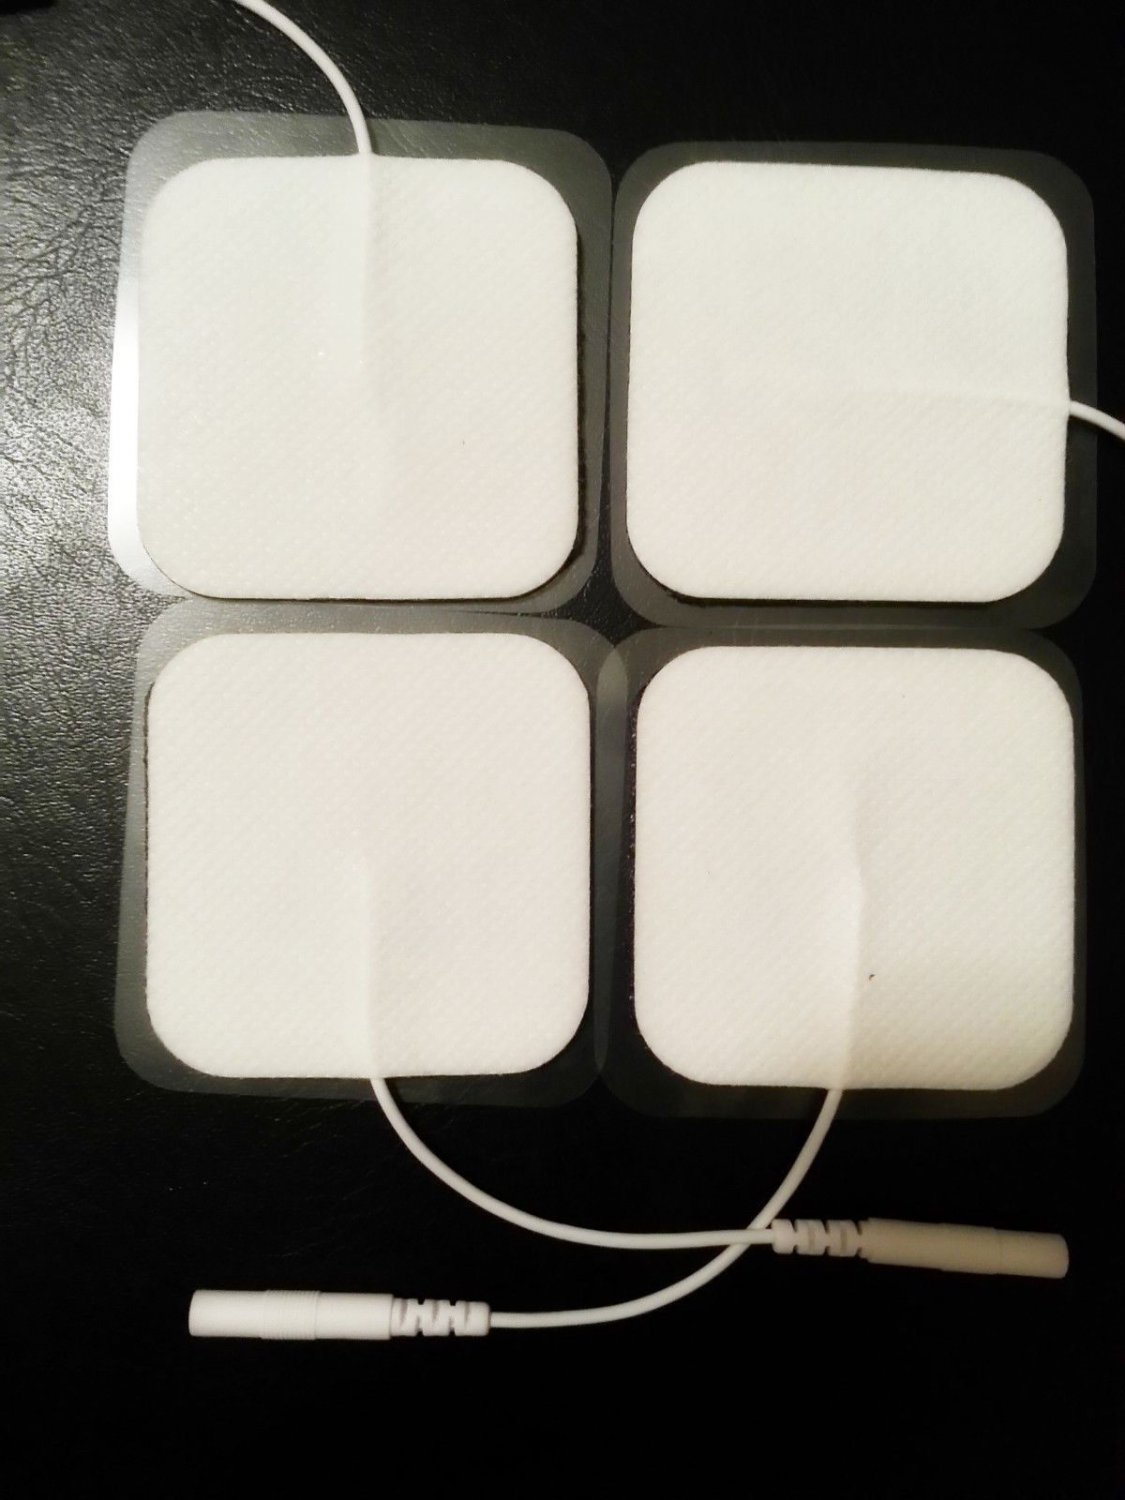 32 PC SQUARE REPLACEMENT ELECTRODE MASSAGE PADS-for Rhythym Touch Massagers